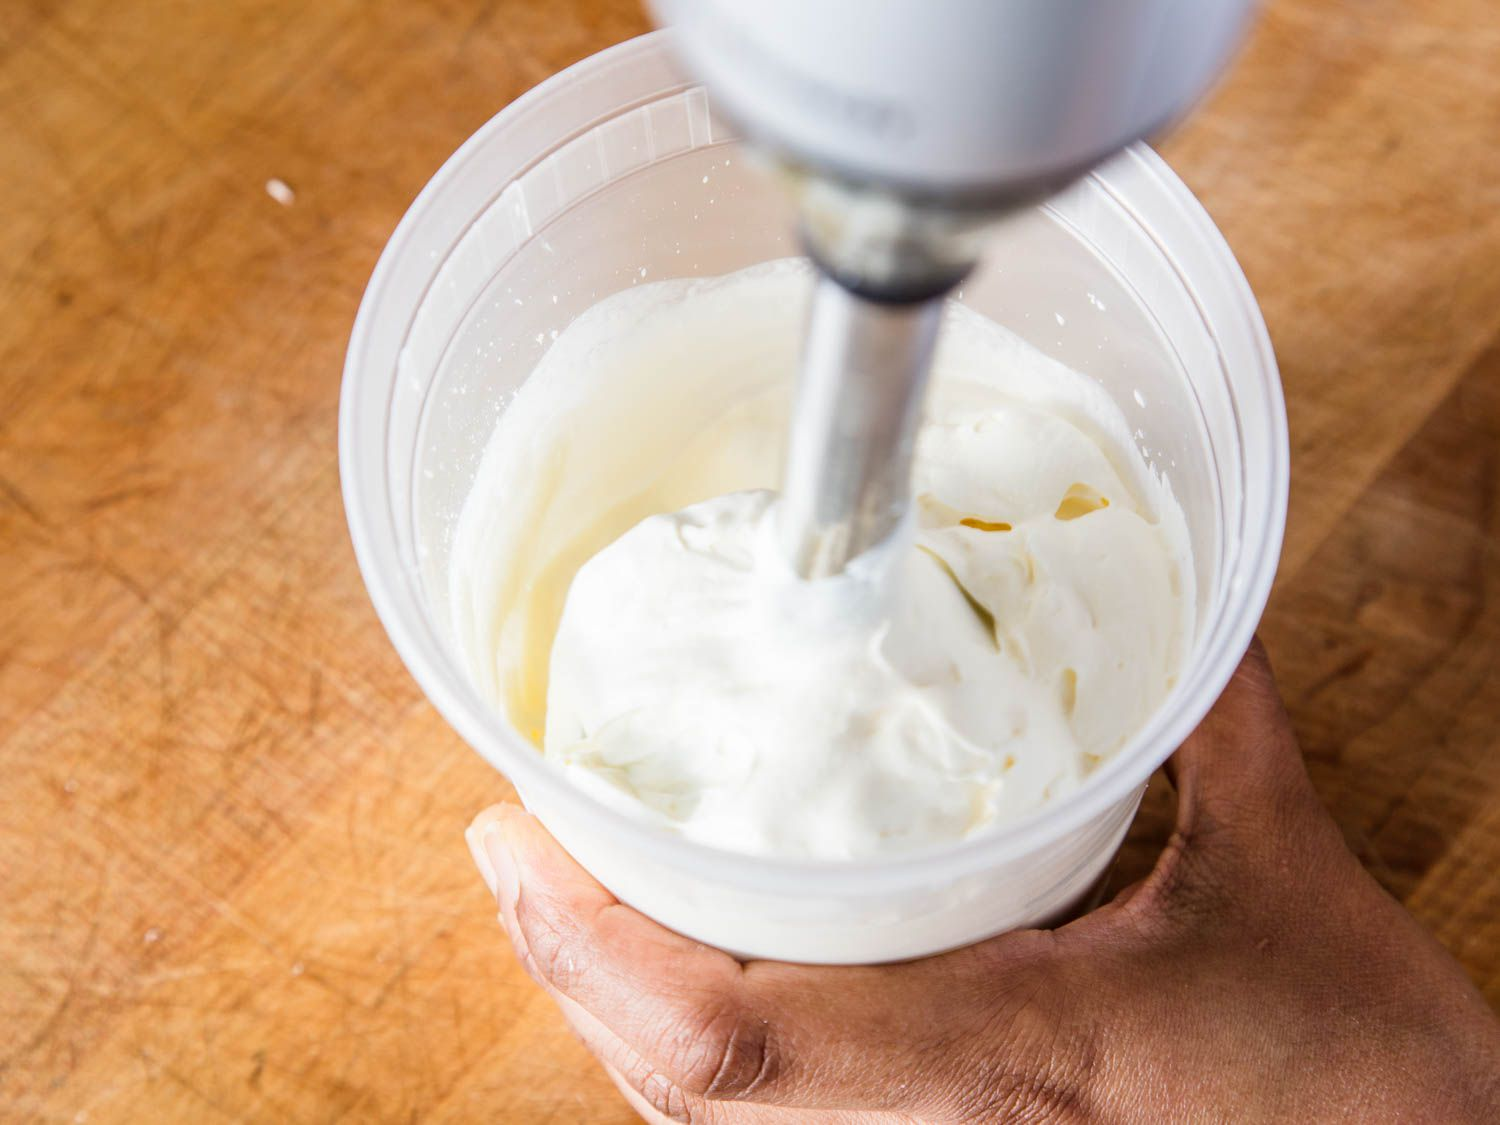 Using an immersion blender to whip cream in a clear plastic container